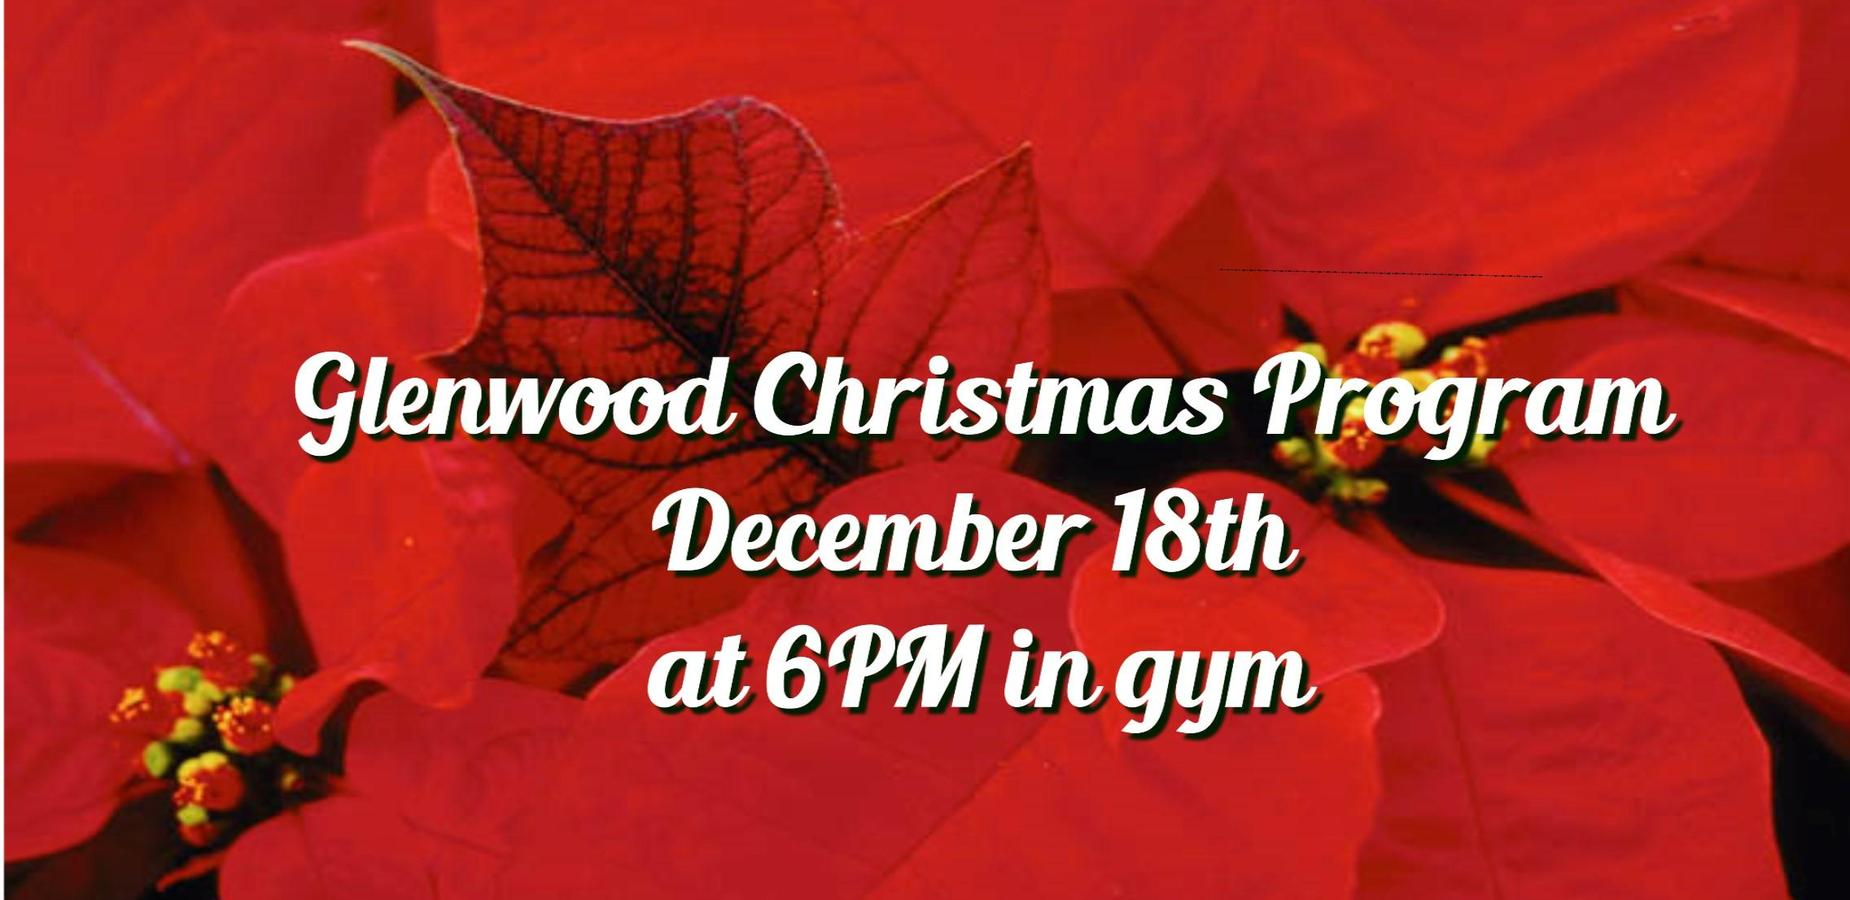 Glenwood Christmas Program